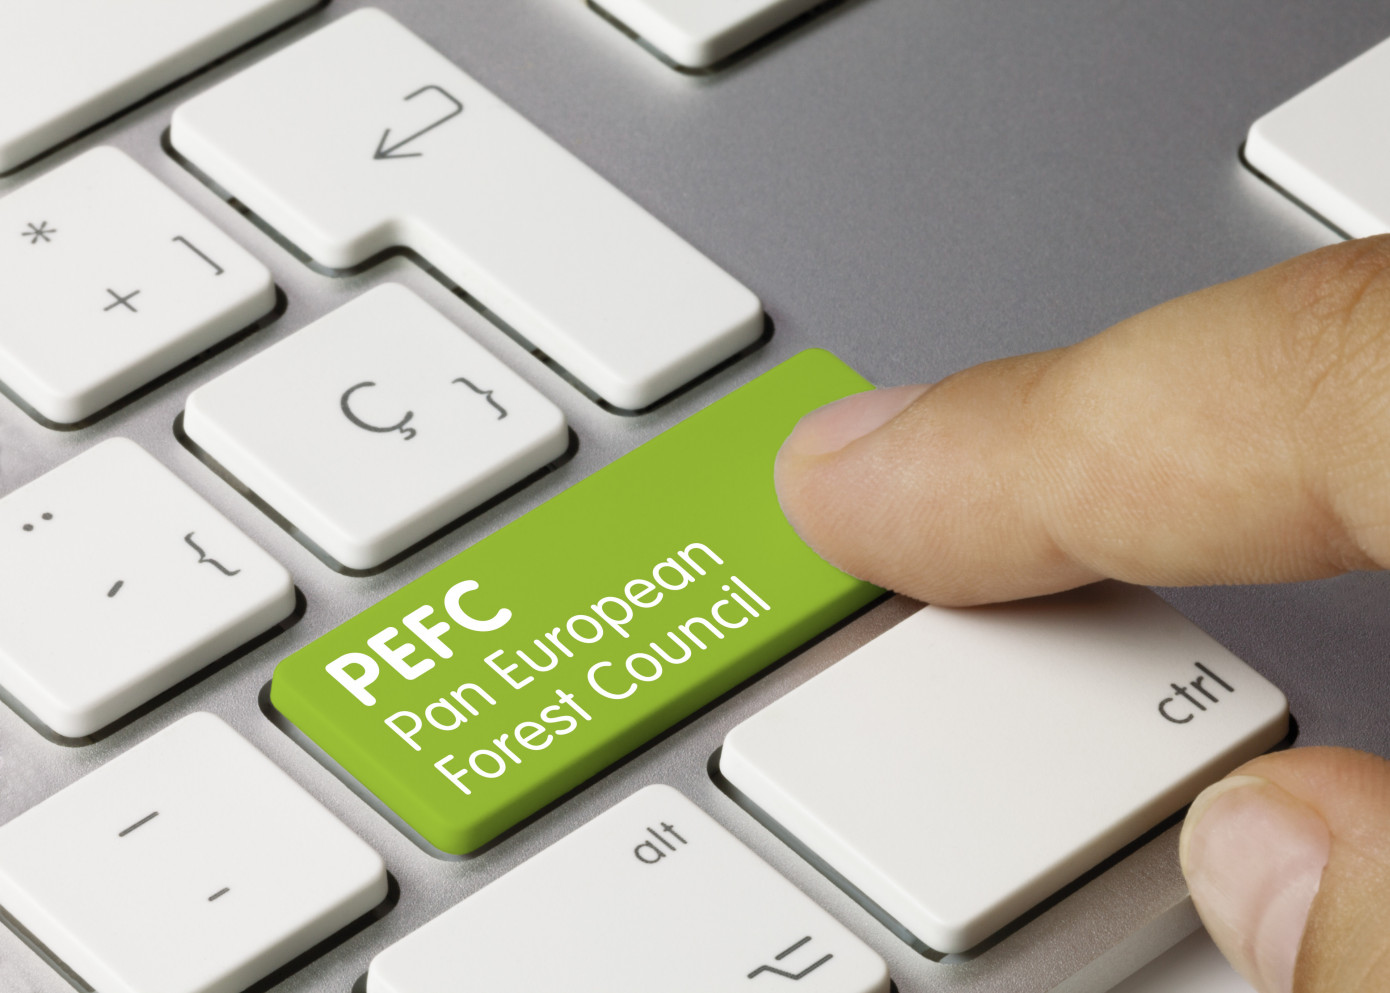 PEFC extends transition period for 2020 standards